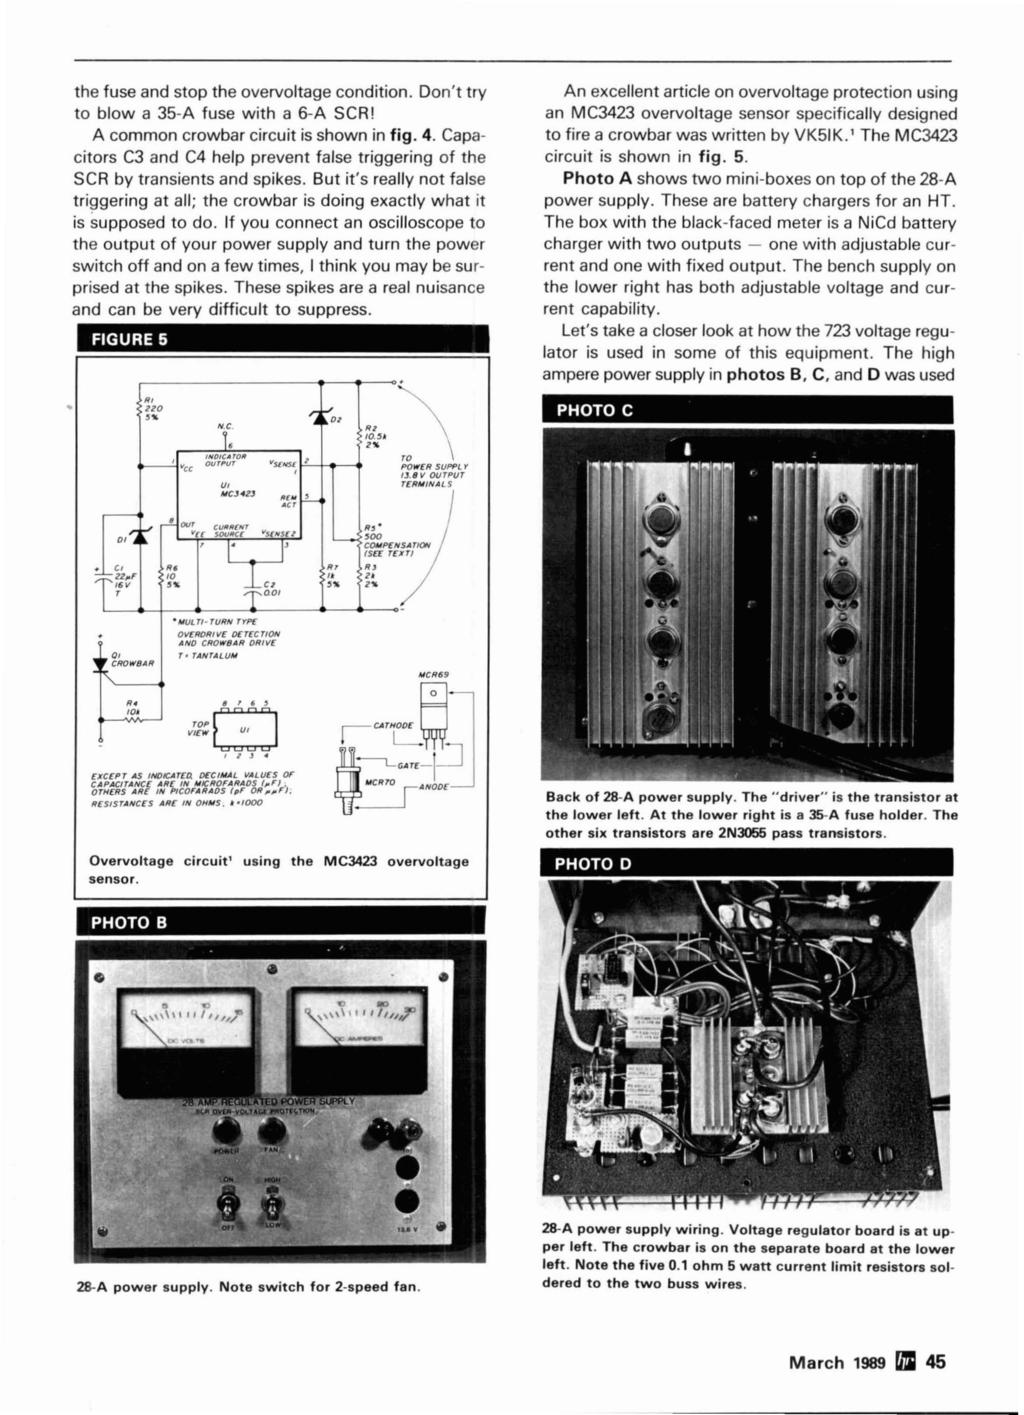 Basic Car Wiring Diagram 1984 Cupe Simple Starter Test 723voltage Regulators Circuits For Chargers Through